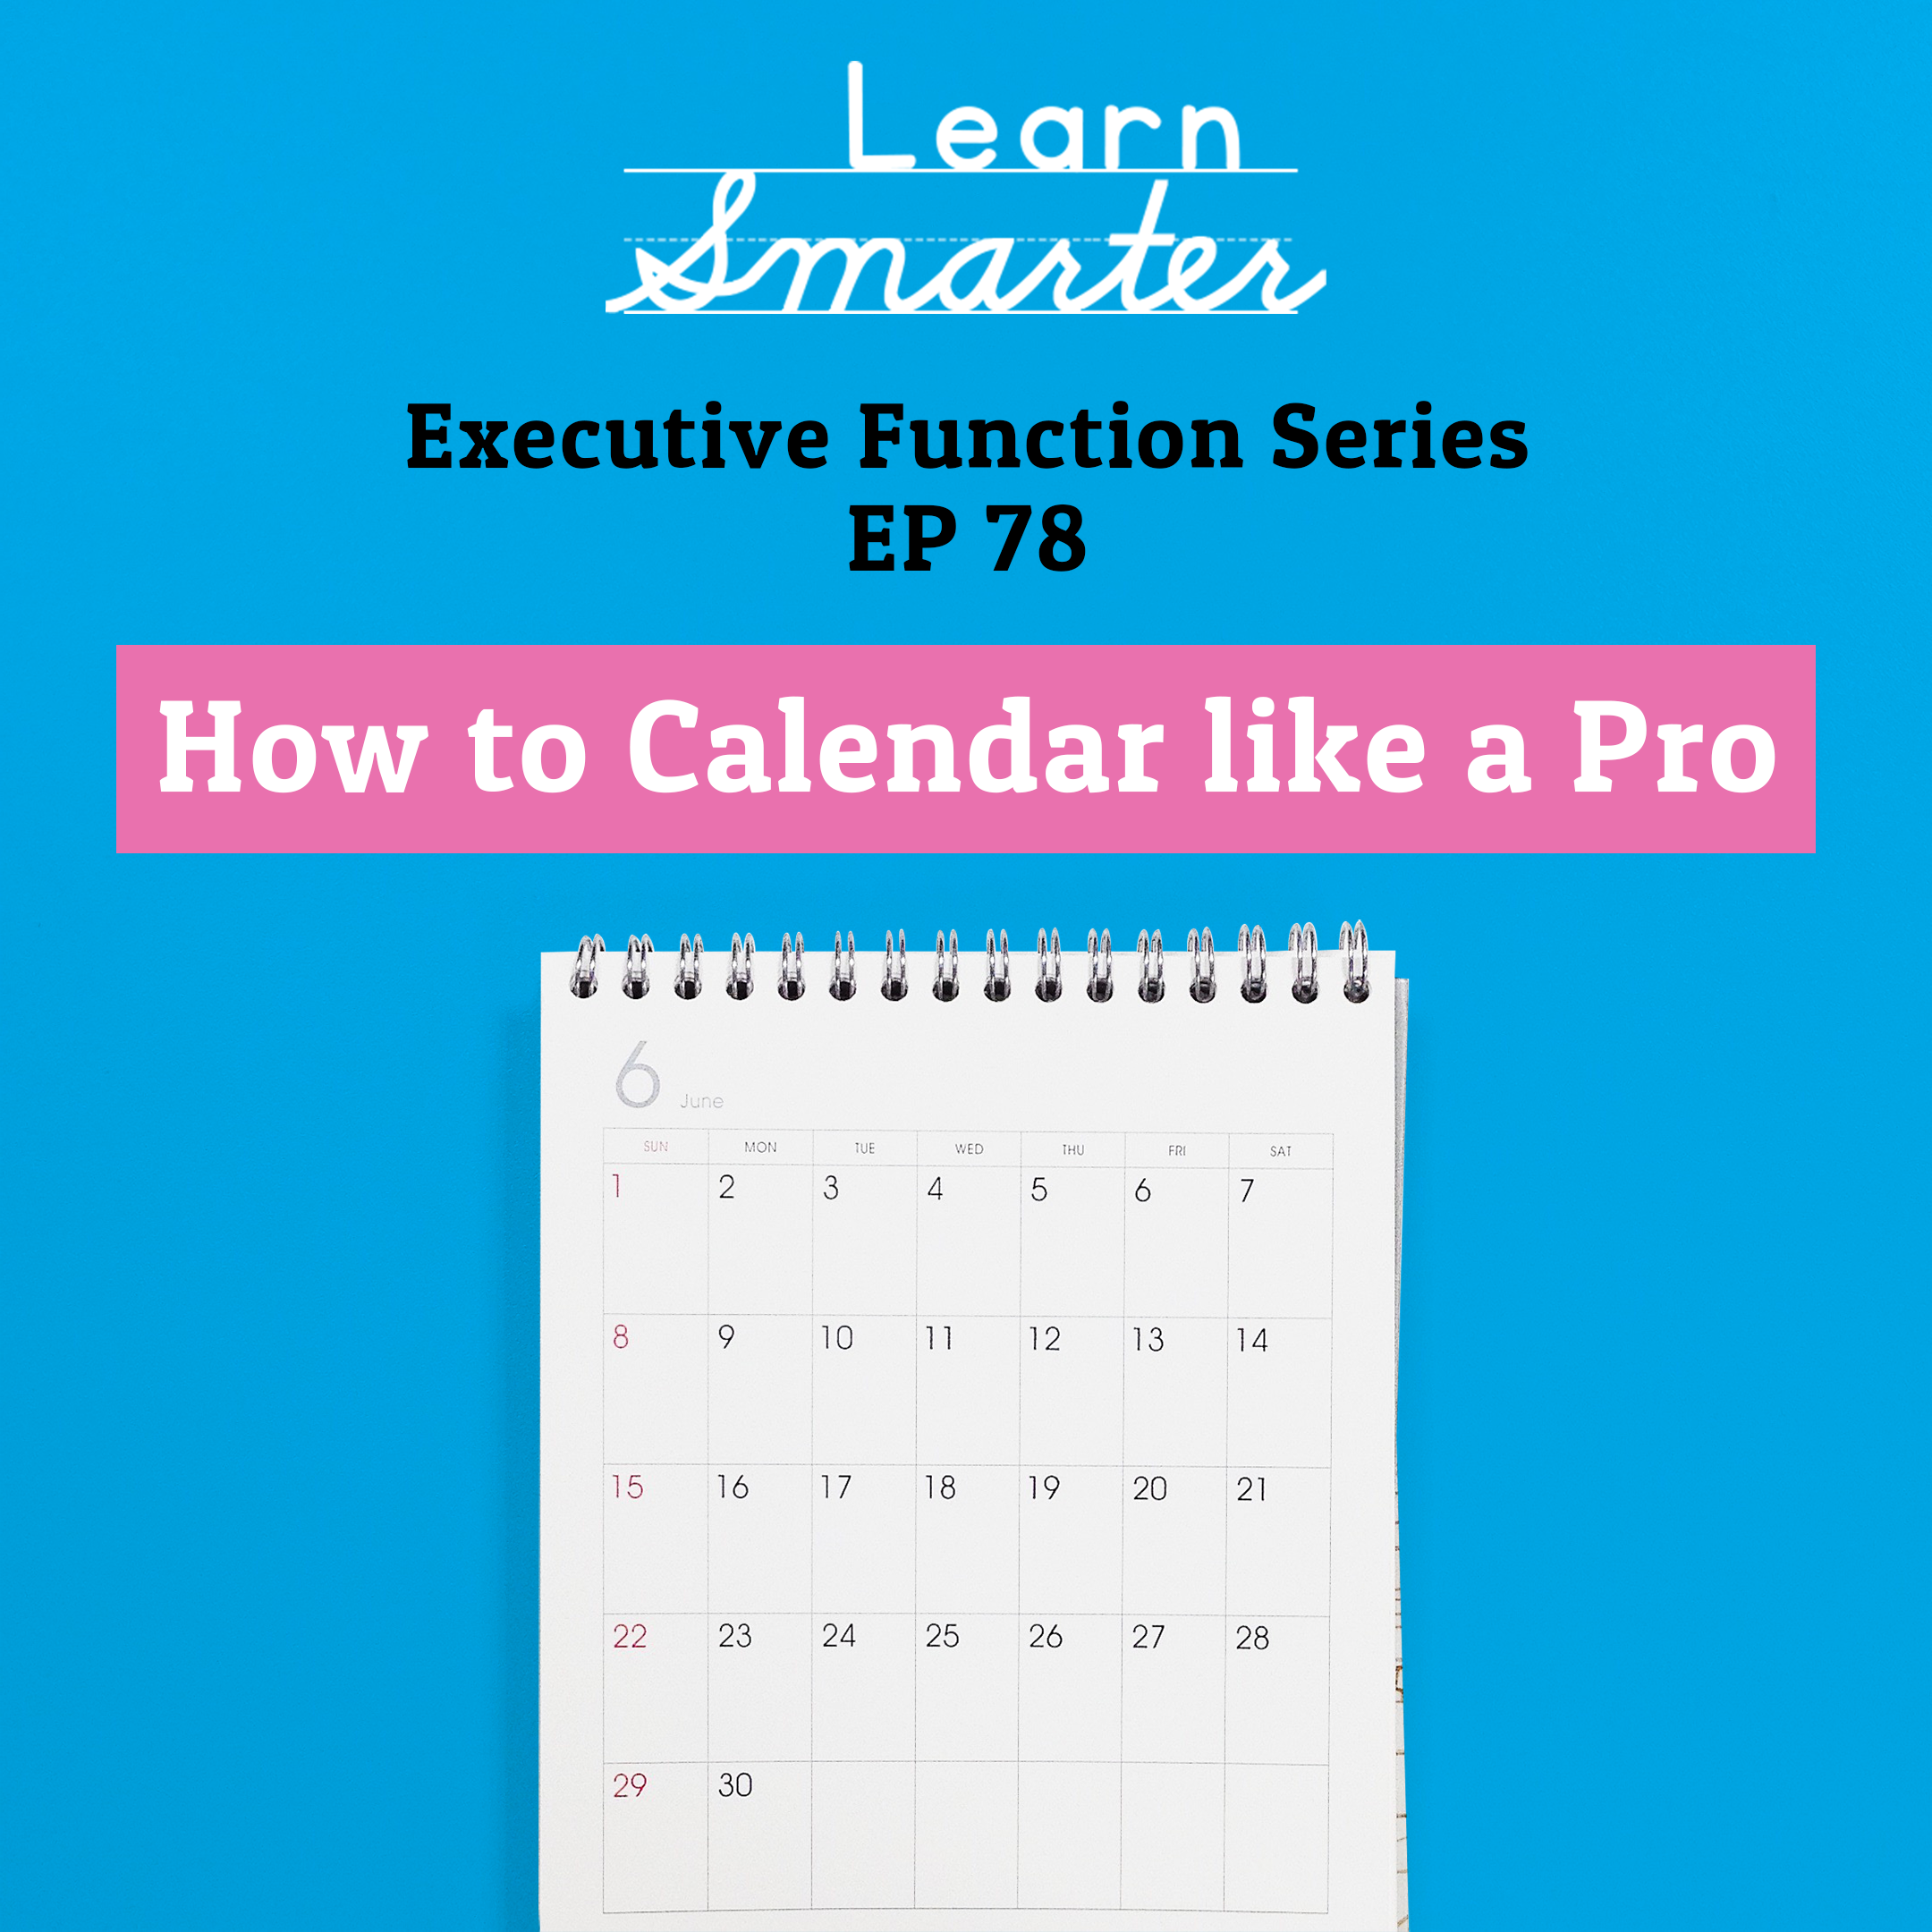 78: How to Calendar like a Pro (Executive Function Series)